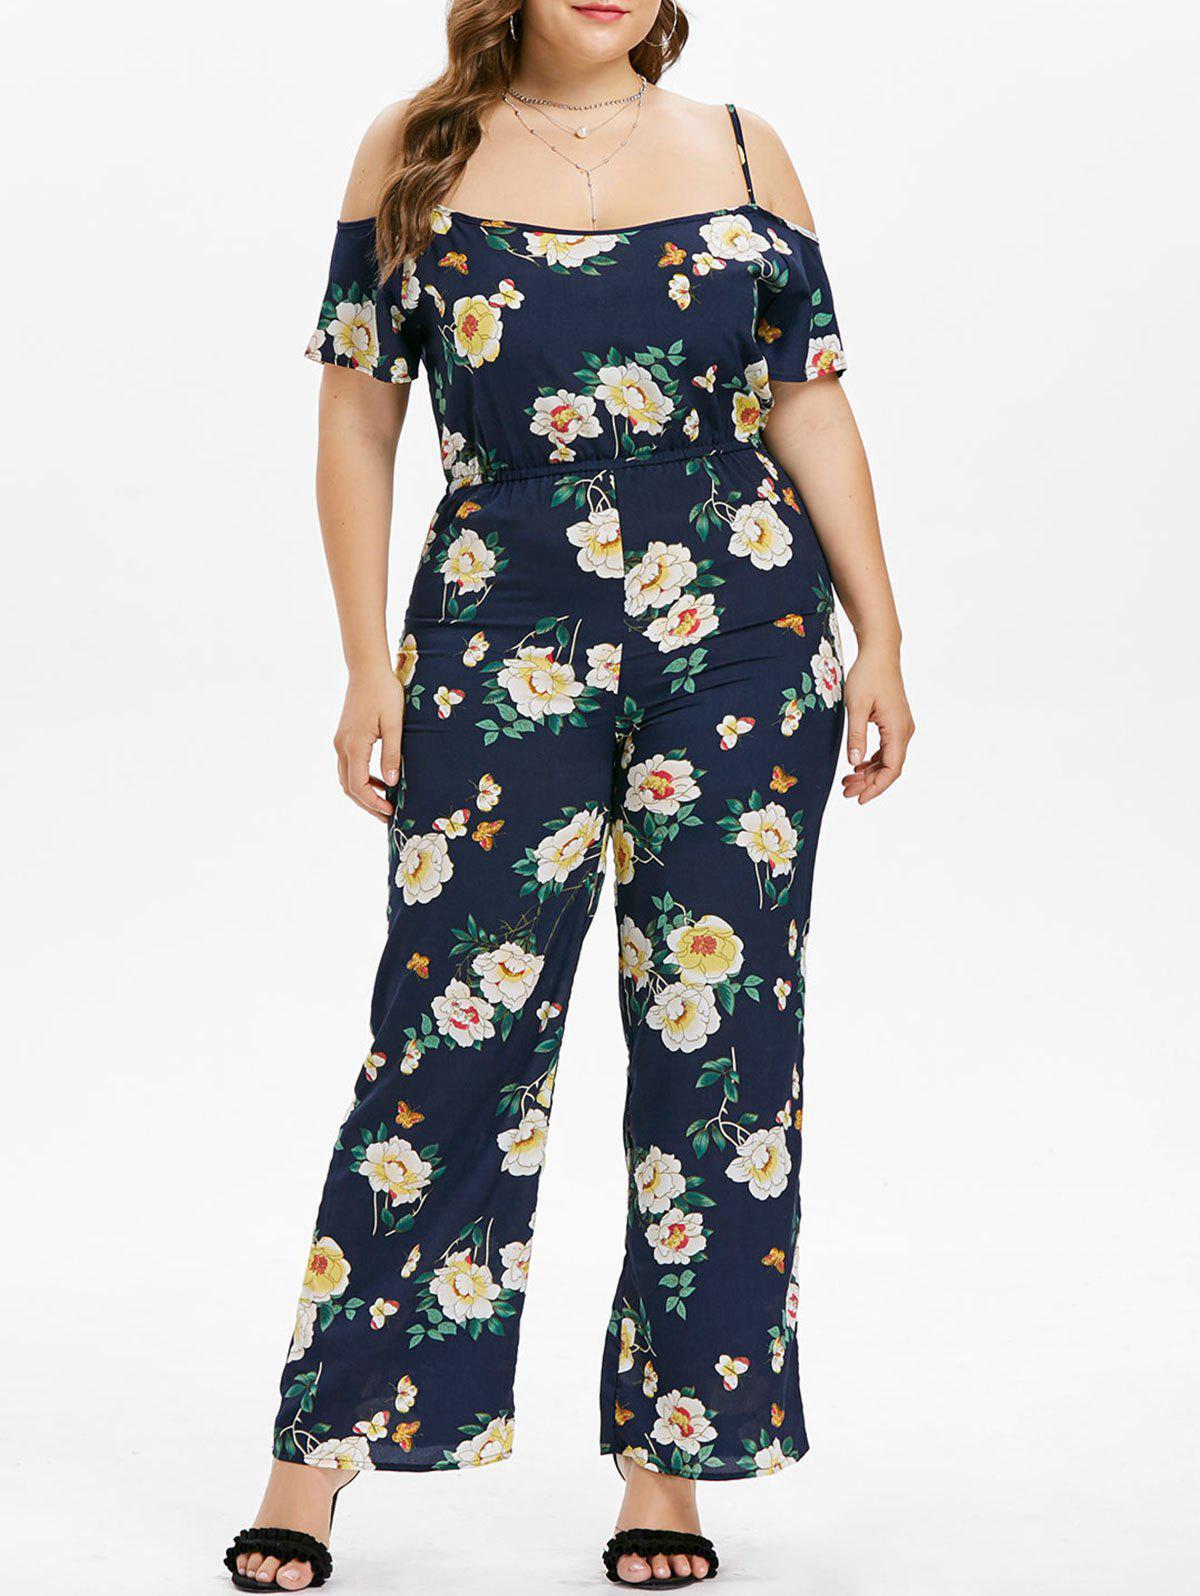 Floral Plus Size Wide Leg Jumpsuit - NAVY BLUE L